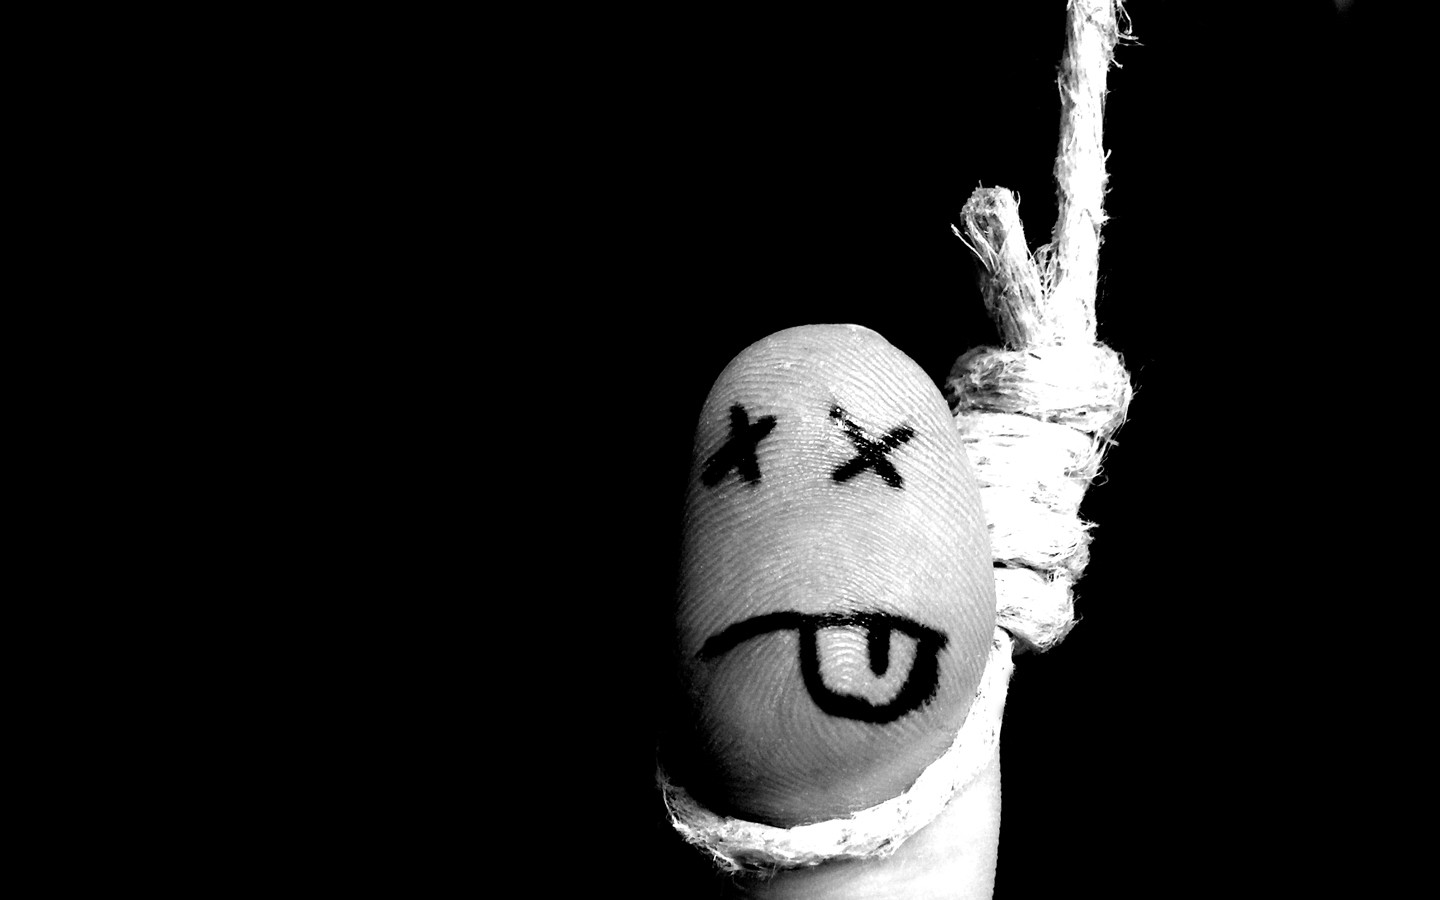 """""""CMS—you're dead to me"""" finger with face wrapped with string  noose image"""